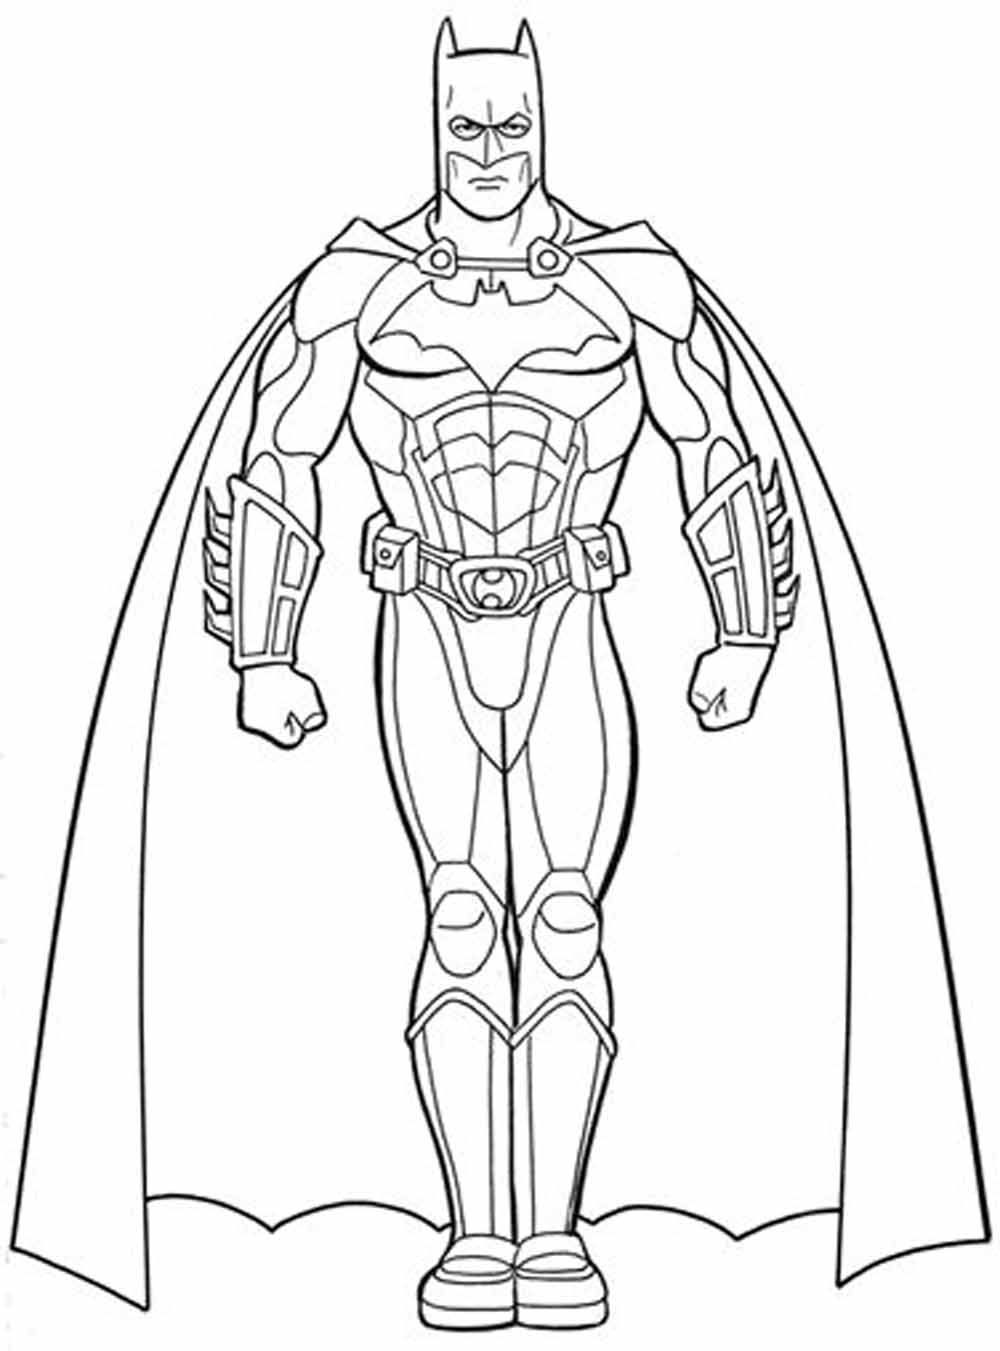 Coloring Free Coloring Page Batman At Printable Pages with Batman ...